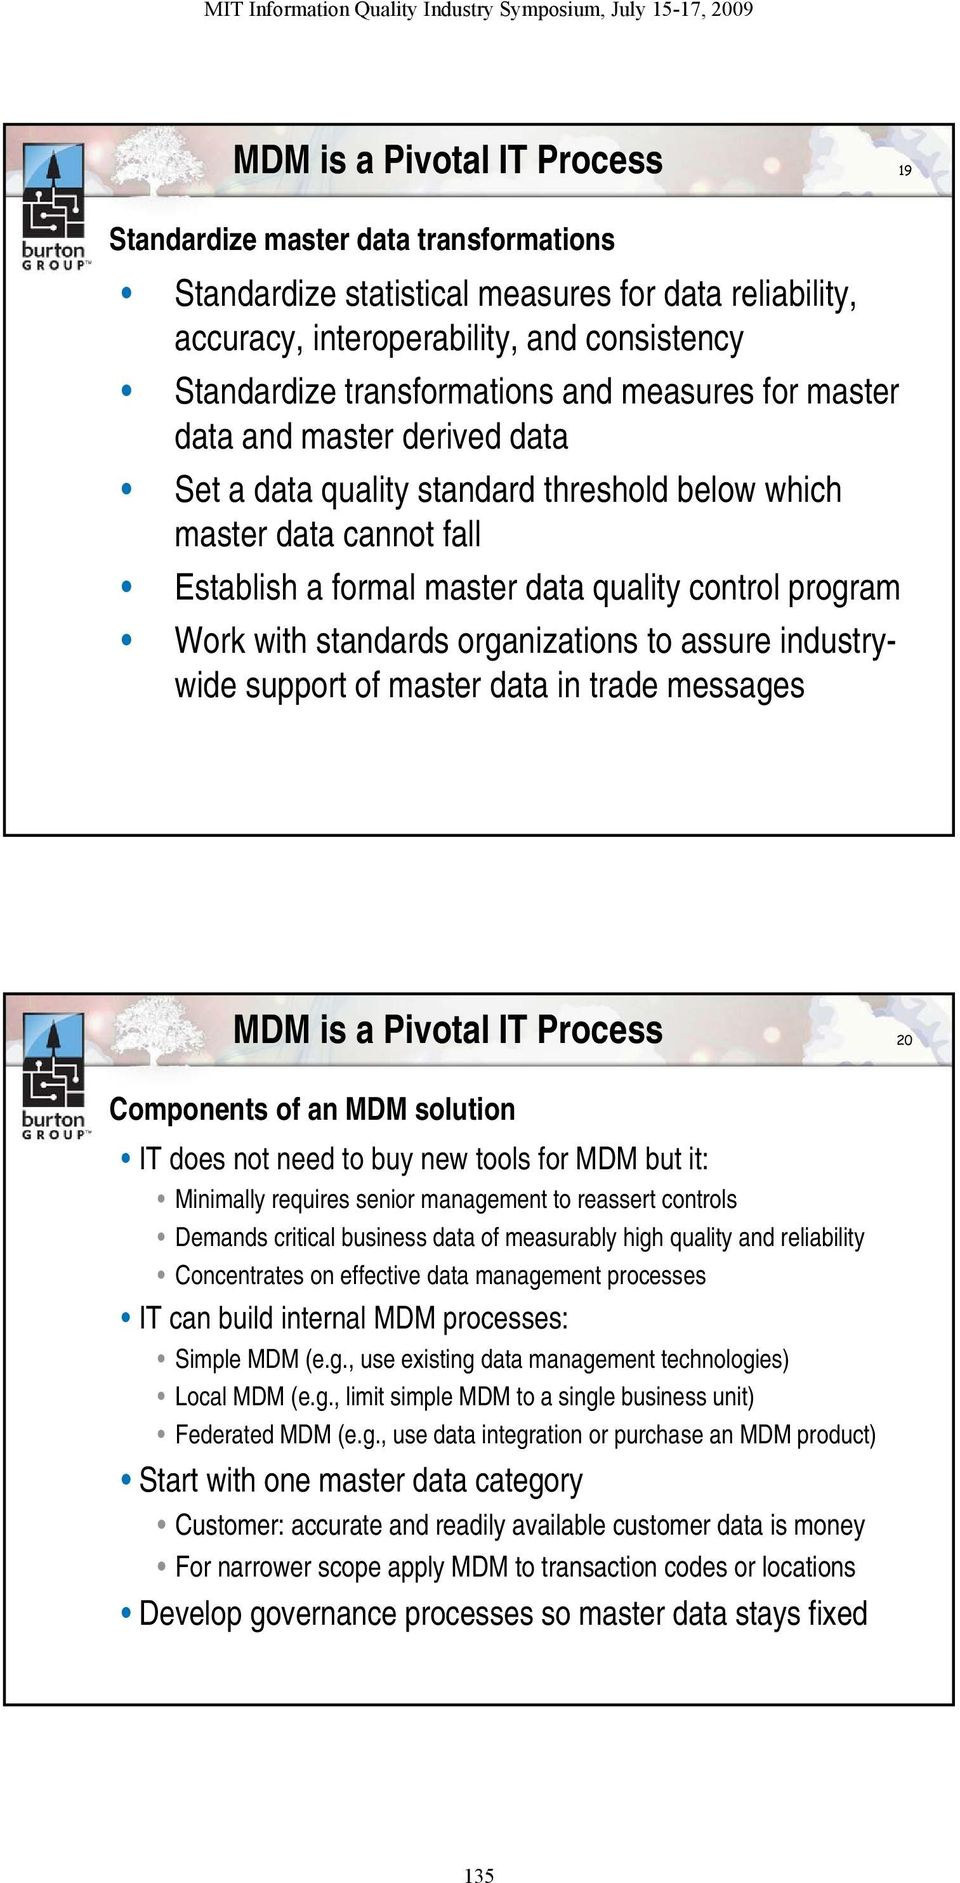 standards organizations to assure industrywide support of master data in trade messages MDM is a Pivotal IT Process 20 Components of an MDM solution IT does not need to buy new tools for MDM but it: